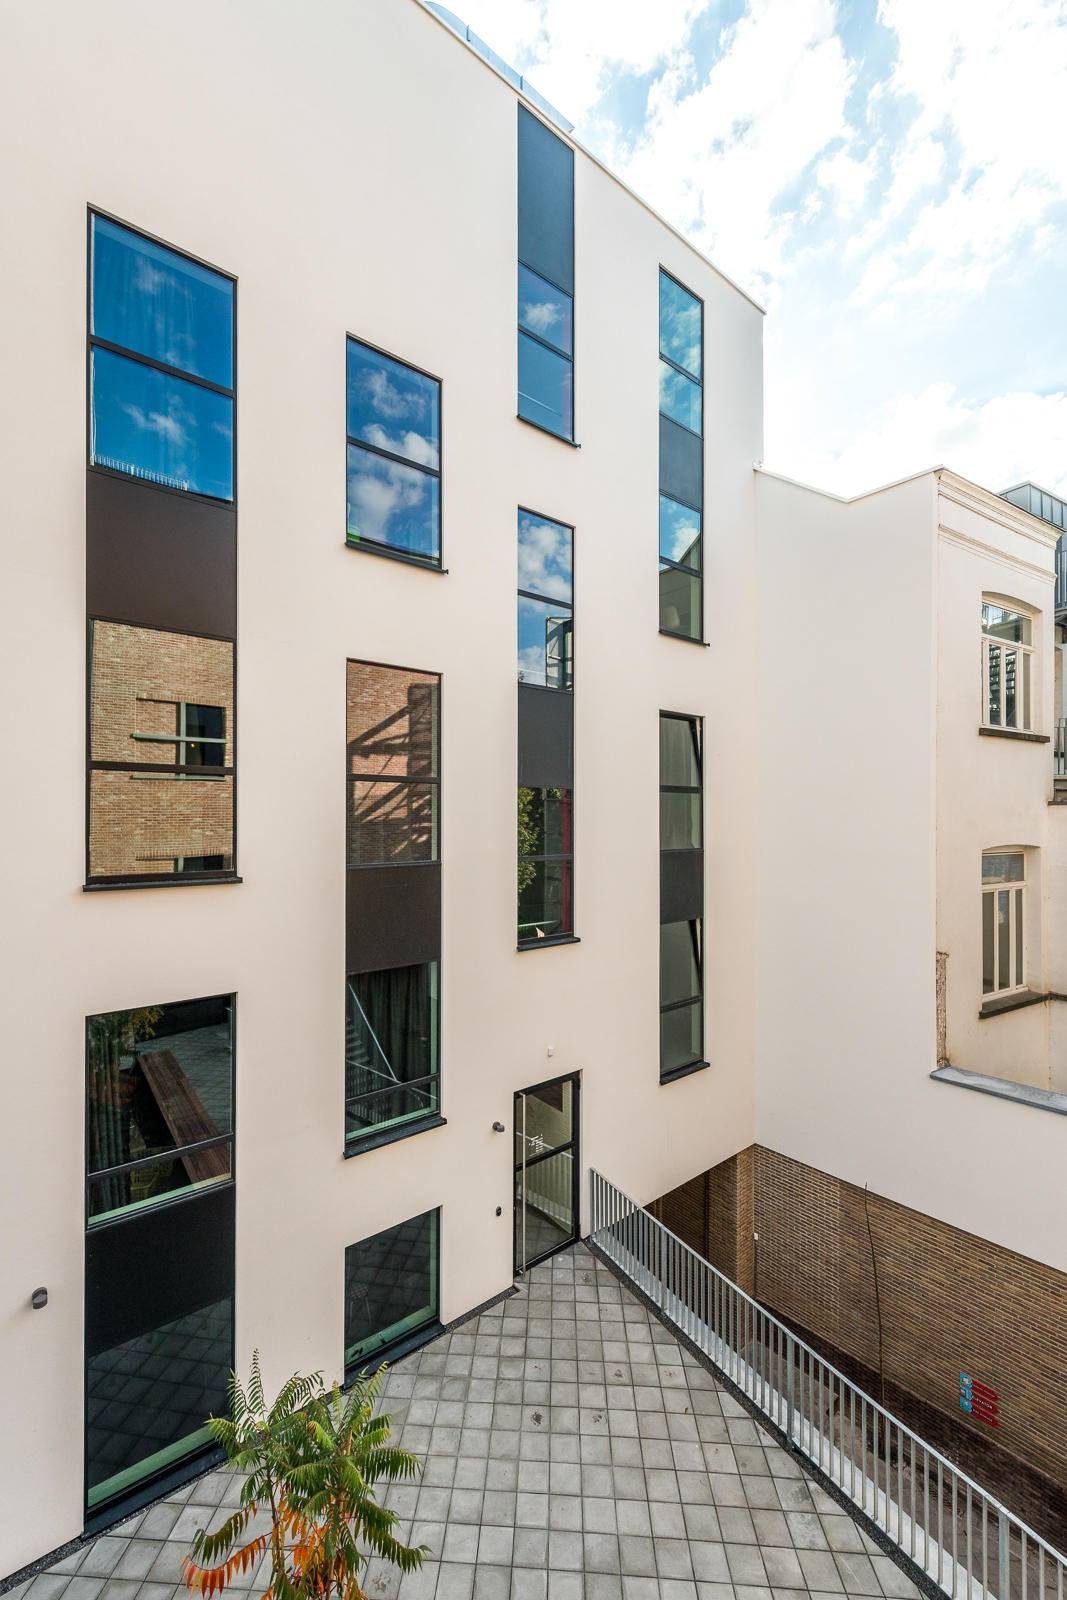 43473032 1900249616728041 3144472976196370432 o | Baeyens & Beck architecten Gent | architect nieuwbouw renovatie interieur | high end | architectenbureau